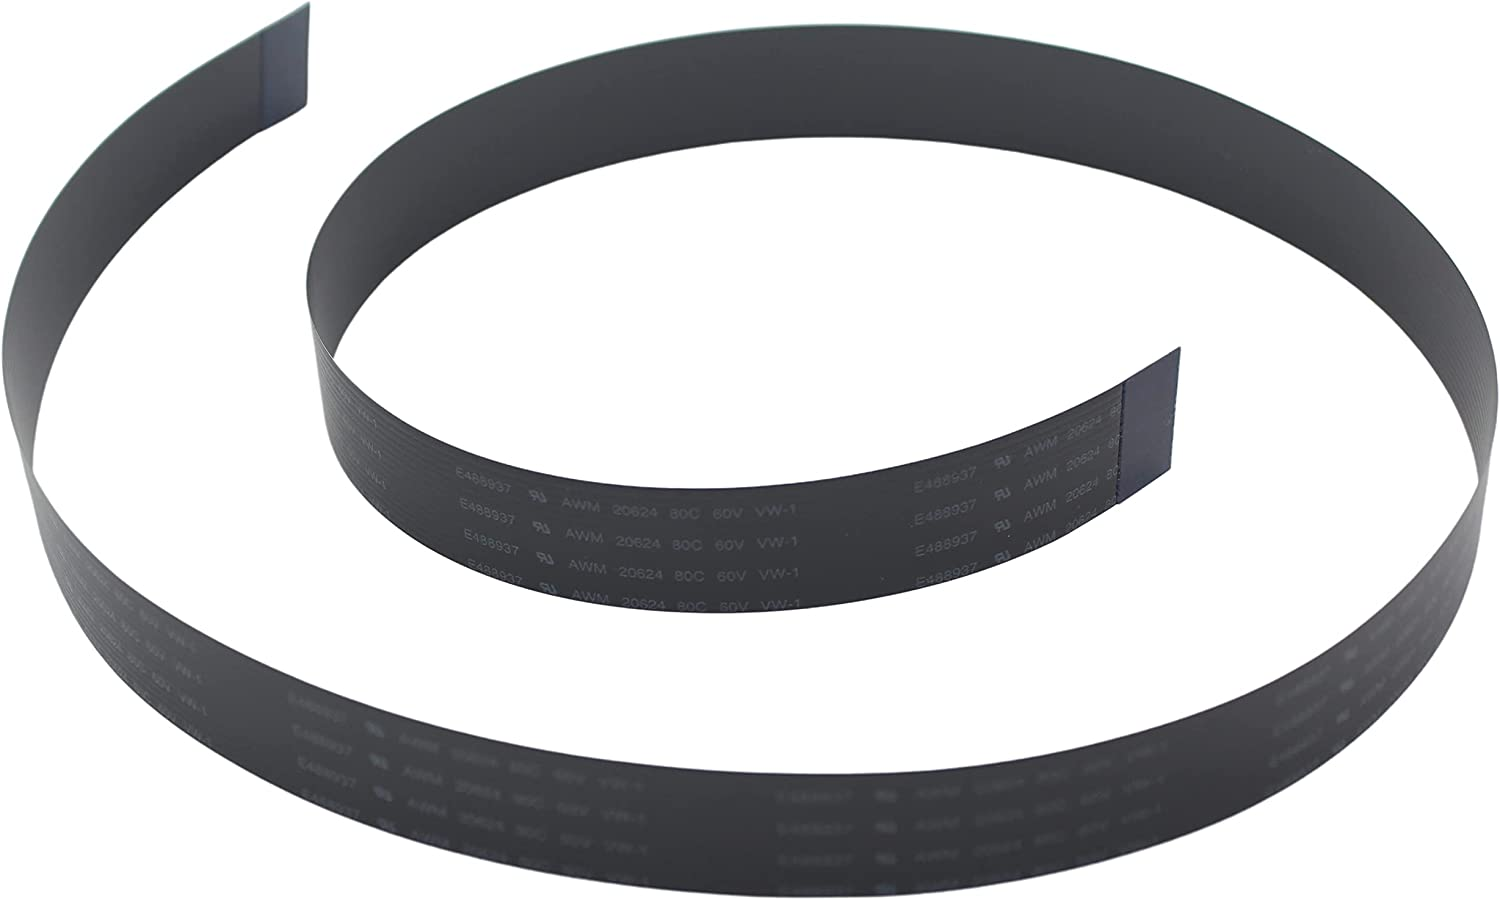 A1 FFCs - Flex Ribbon Cable for overseas Pi Camera 60 Raspberry OFFicial store c Black